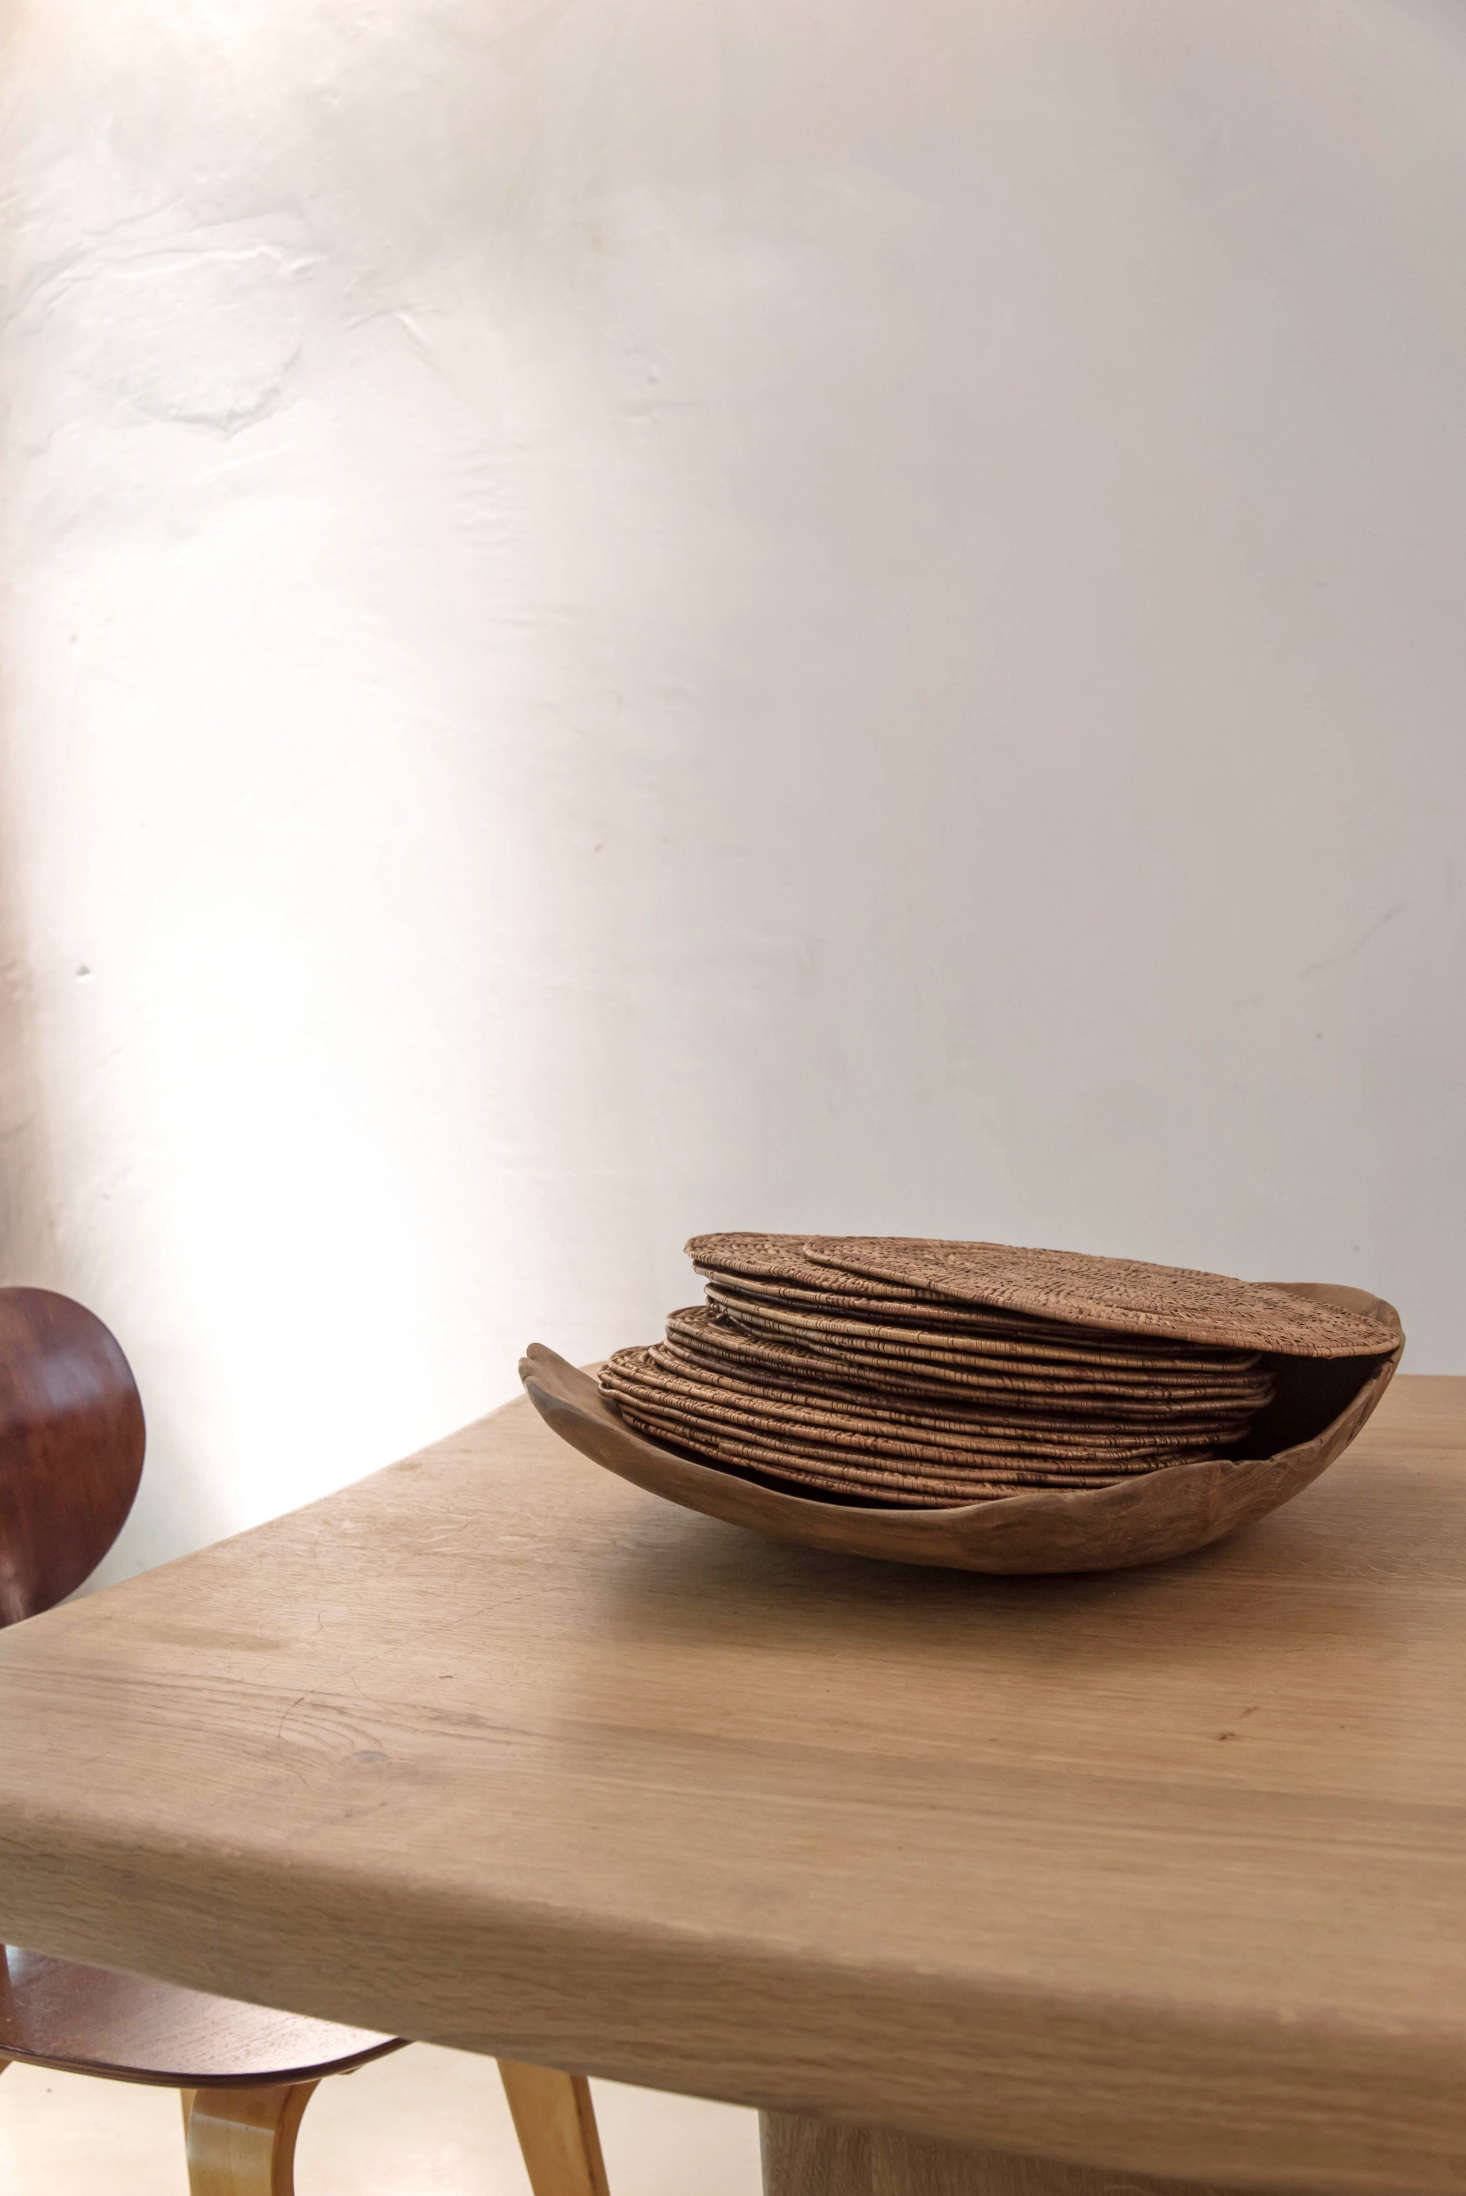 """For an impromptu table setting, stack napkins, placemats, and glassware on the table and set out vintage baskets heaping with flatware. Here, woven placemats become a design object when set in a wooden bowl. (De Villeneuve sourced design elements that would feel """"in line with the products that I was sourcing: grains, flour, olive oil, almonds, etc., coming from Sicilia, South of France, Mallorca""""—the placemats are from Mauritius.)"""